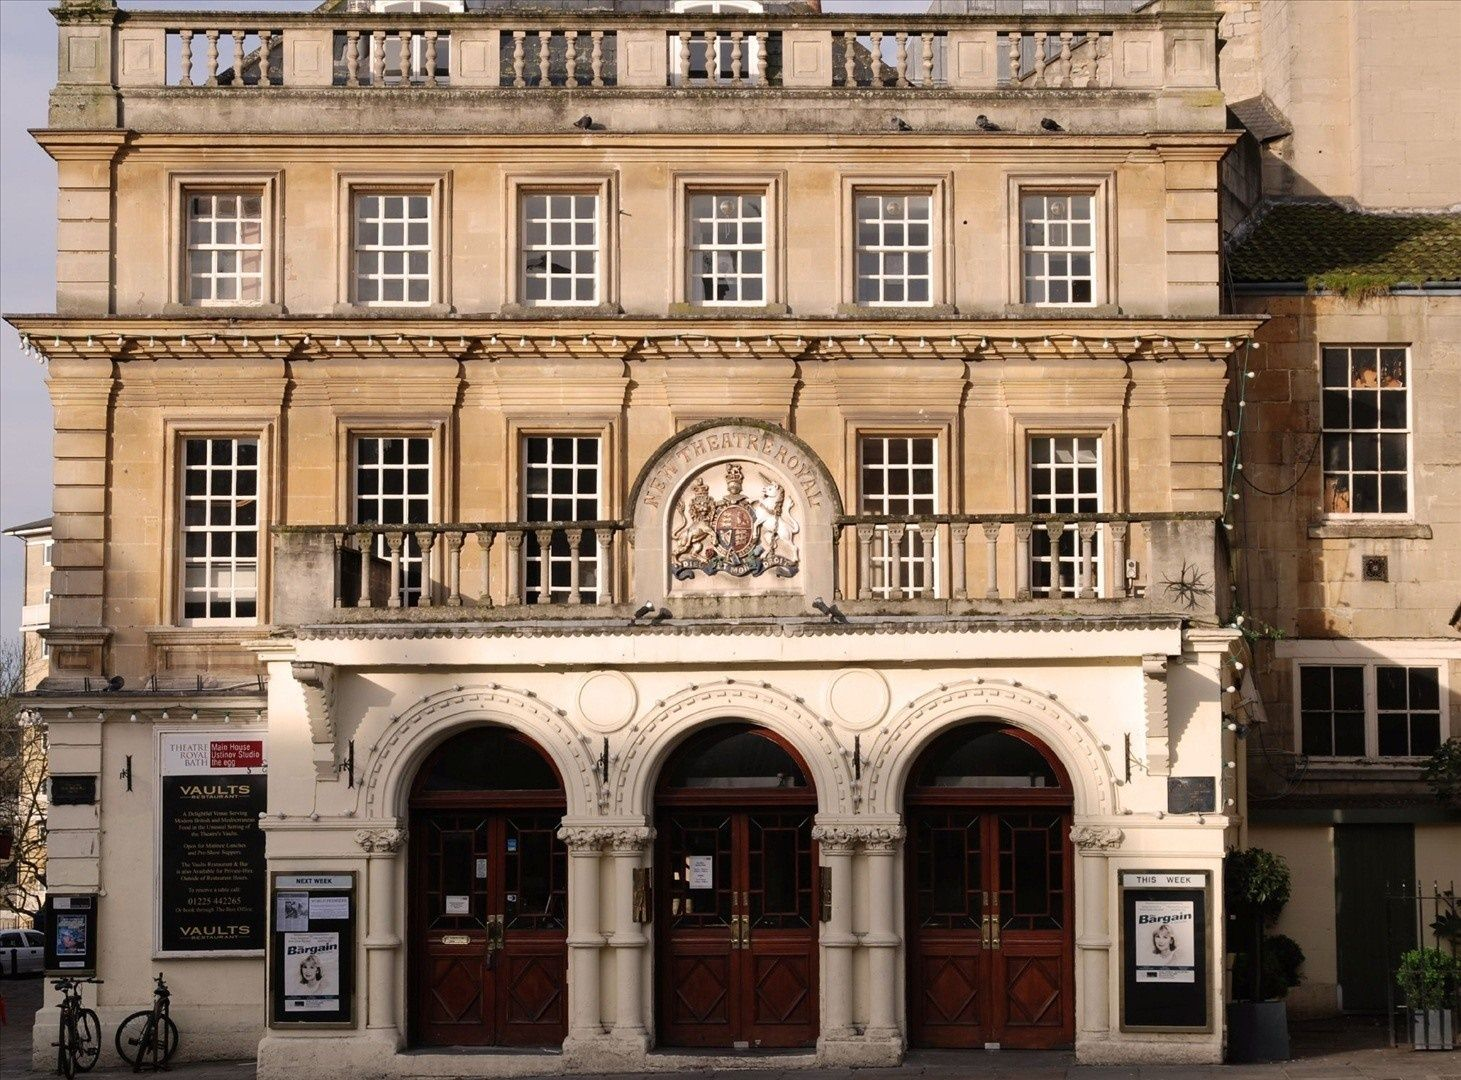 SIGHTS. Theatre Royal Bath. Theatre Royal, located next to the new Seven Dials development, was restored in 1982 and refurbished with plush seats, red carpets, and a painted proscenium arch and ceiling; it is now the most beautiful theater in Britain. It has 880 seats, with a s